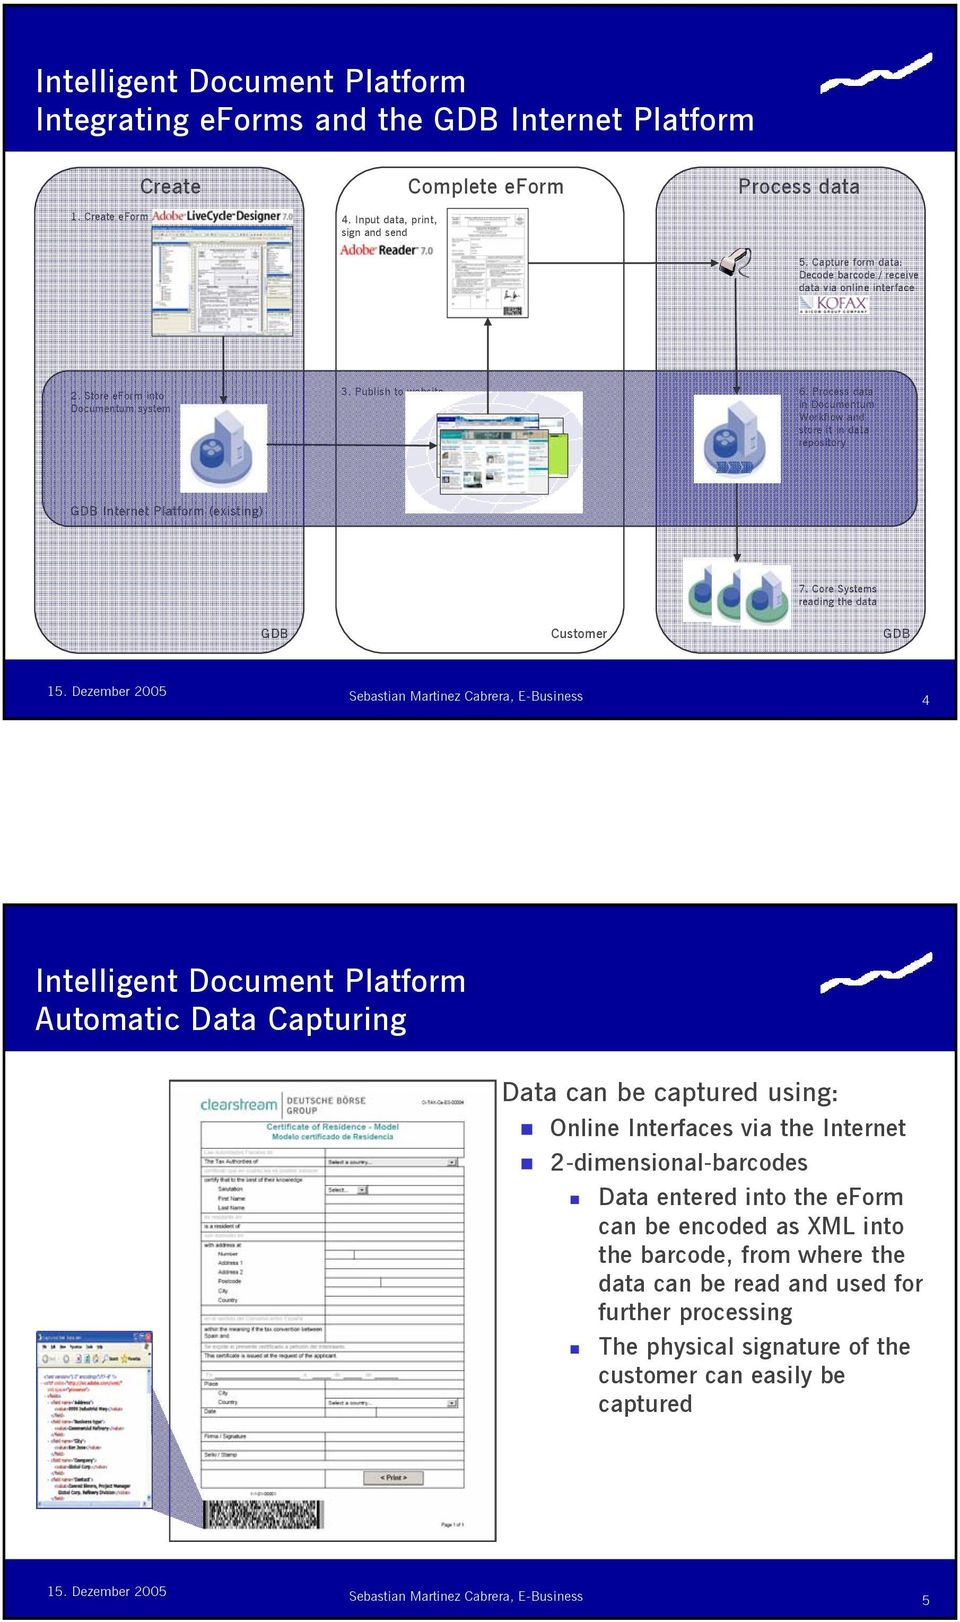 Process data in Documentum Workflow and store it in data repository GDB Internet Platform (existing) 7.